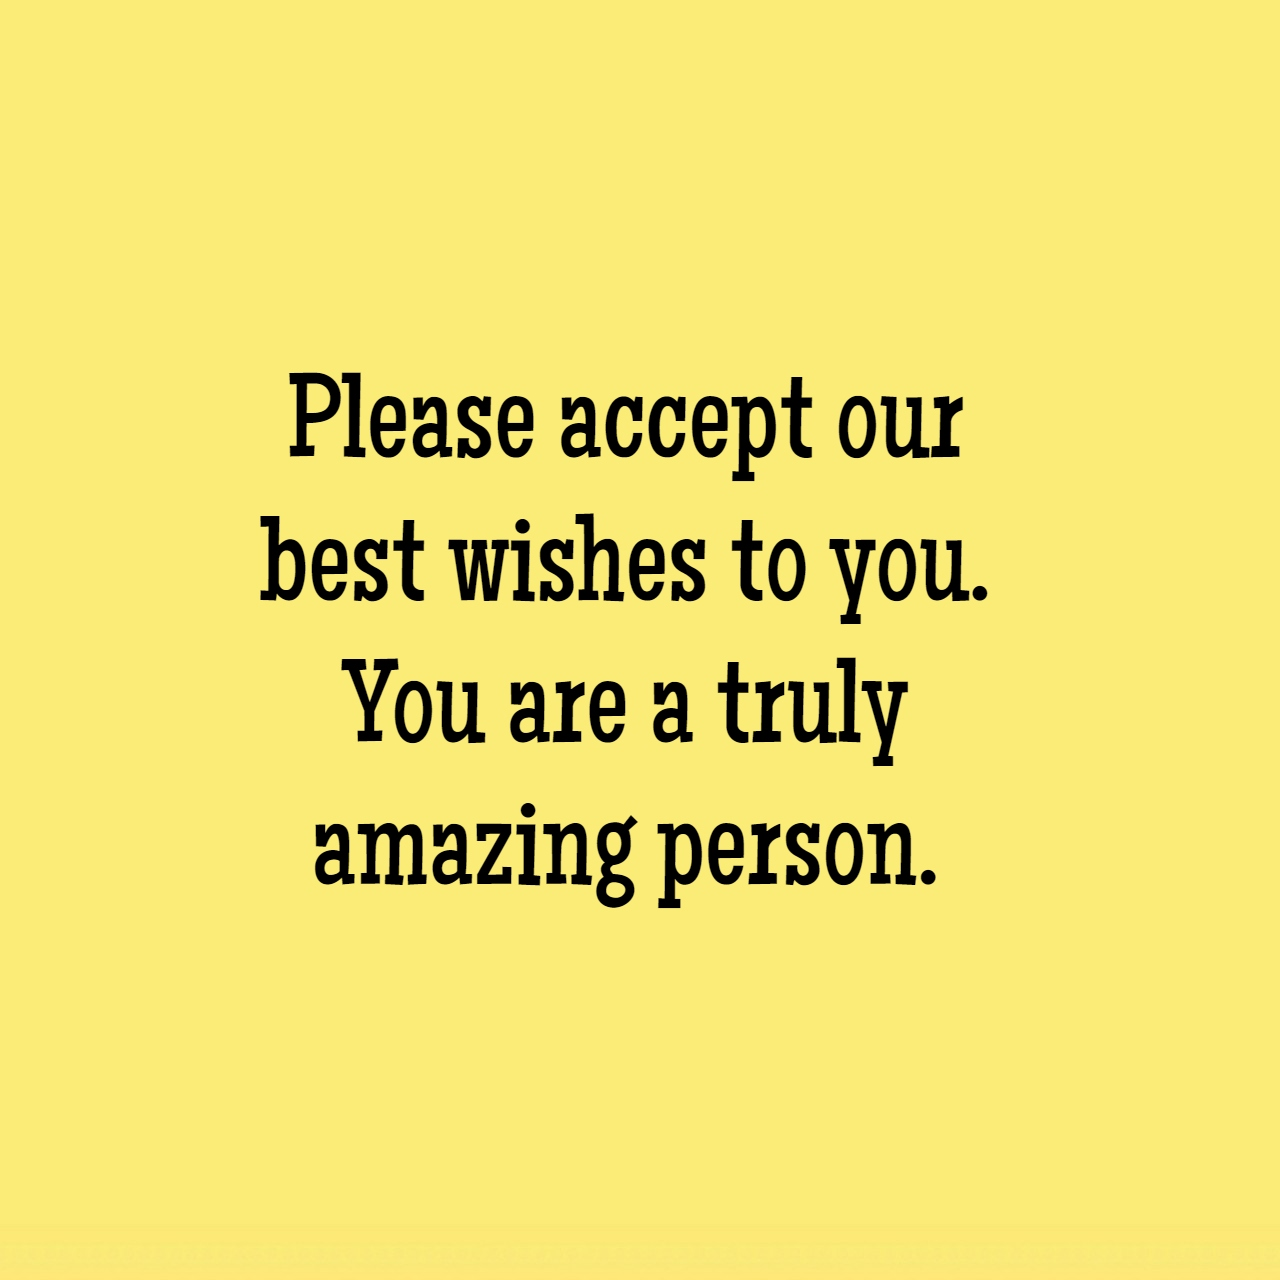 50 Best Wishes For The Future Text Image Quotes Quotereel